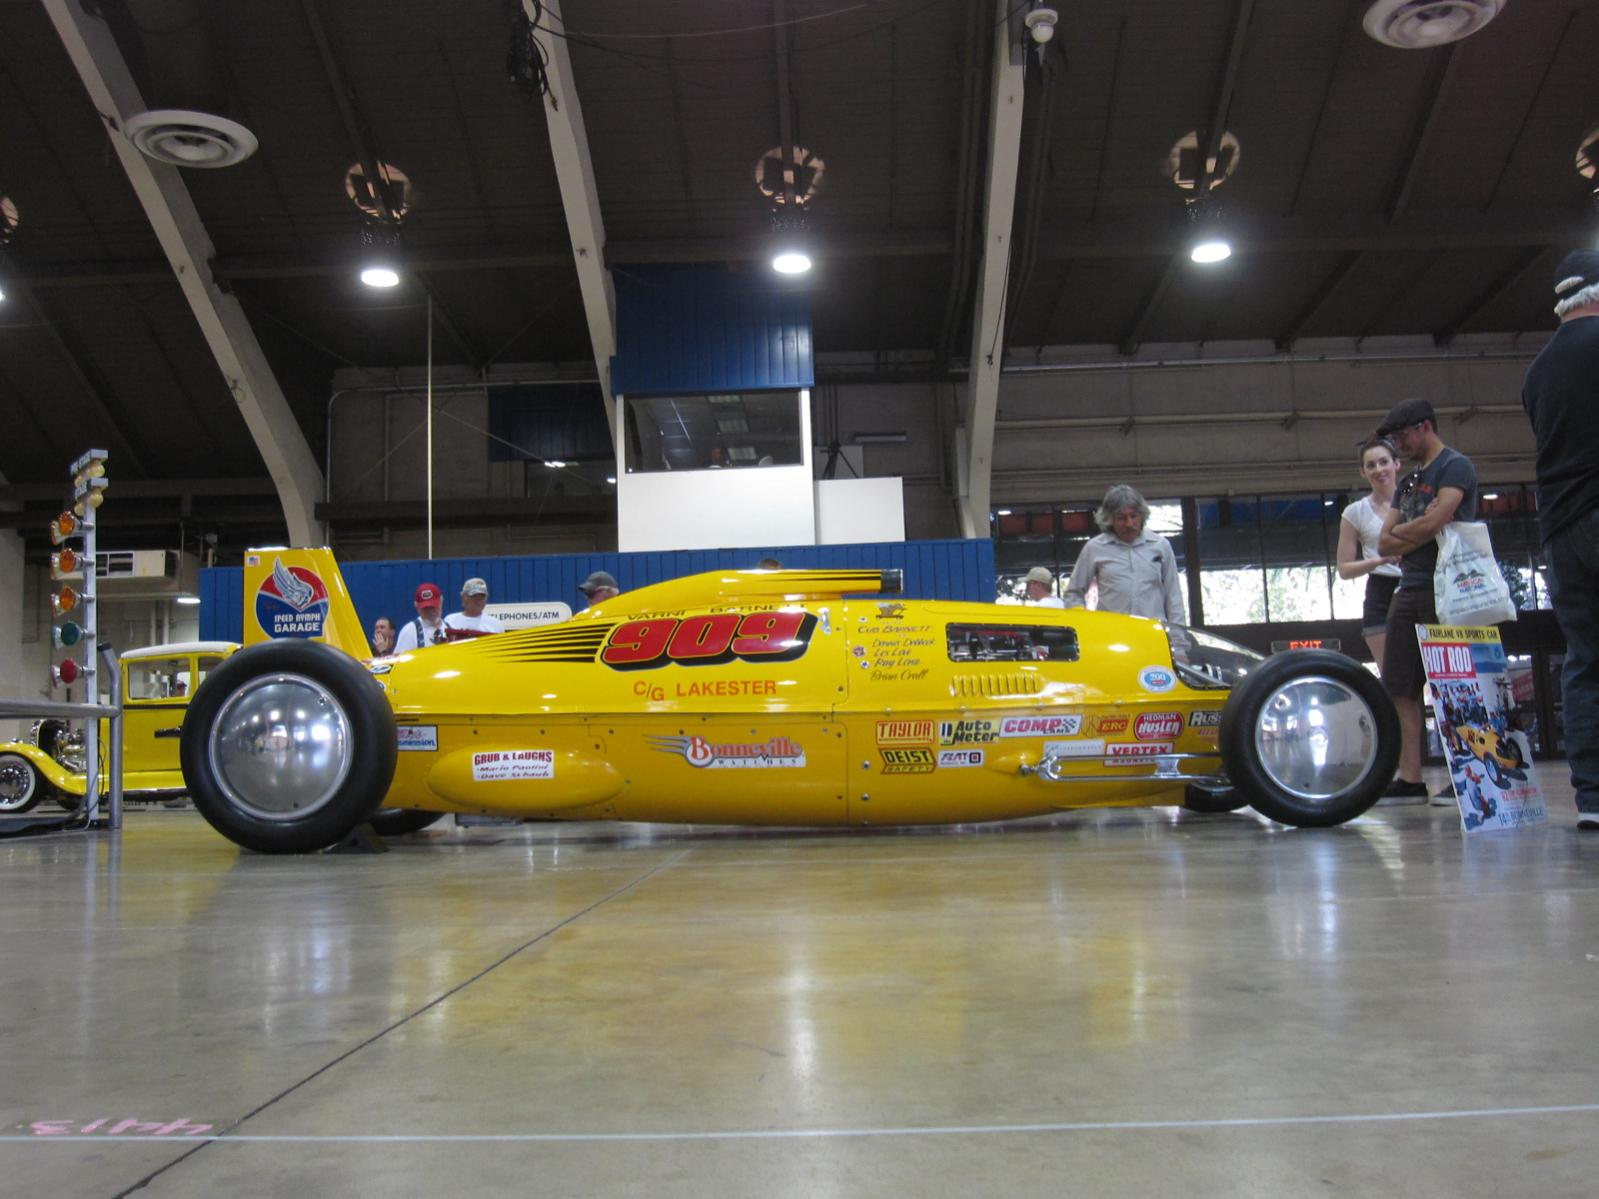 @ HRM 65th Anniversary Cover Cars Exhibit - pic1 (by Craig Wise) .jpg